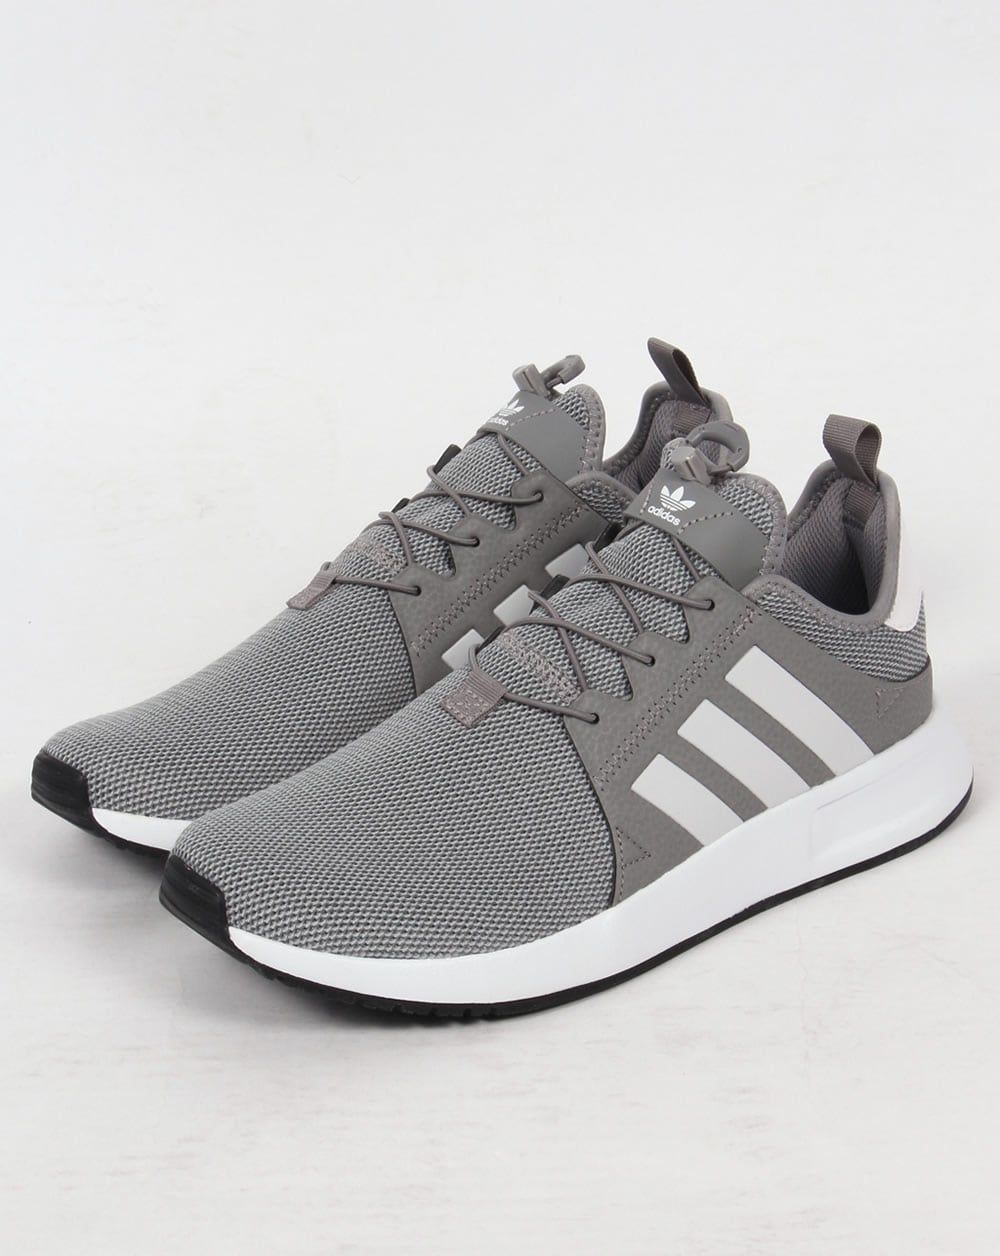 7929ba70c3f Bildresultat för adidas x plr light grey